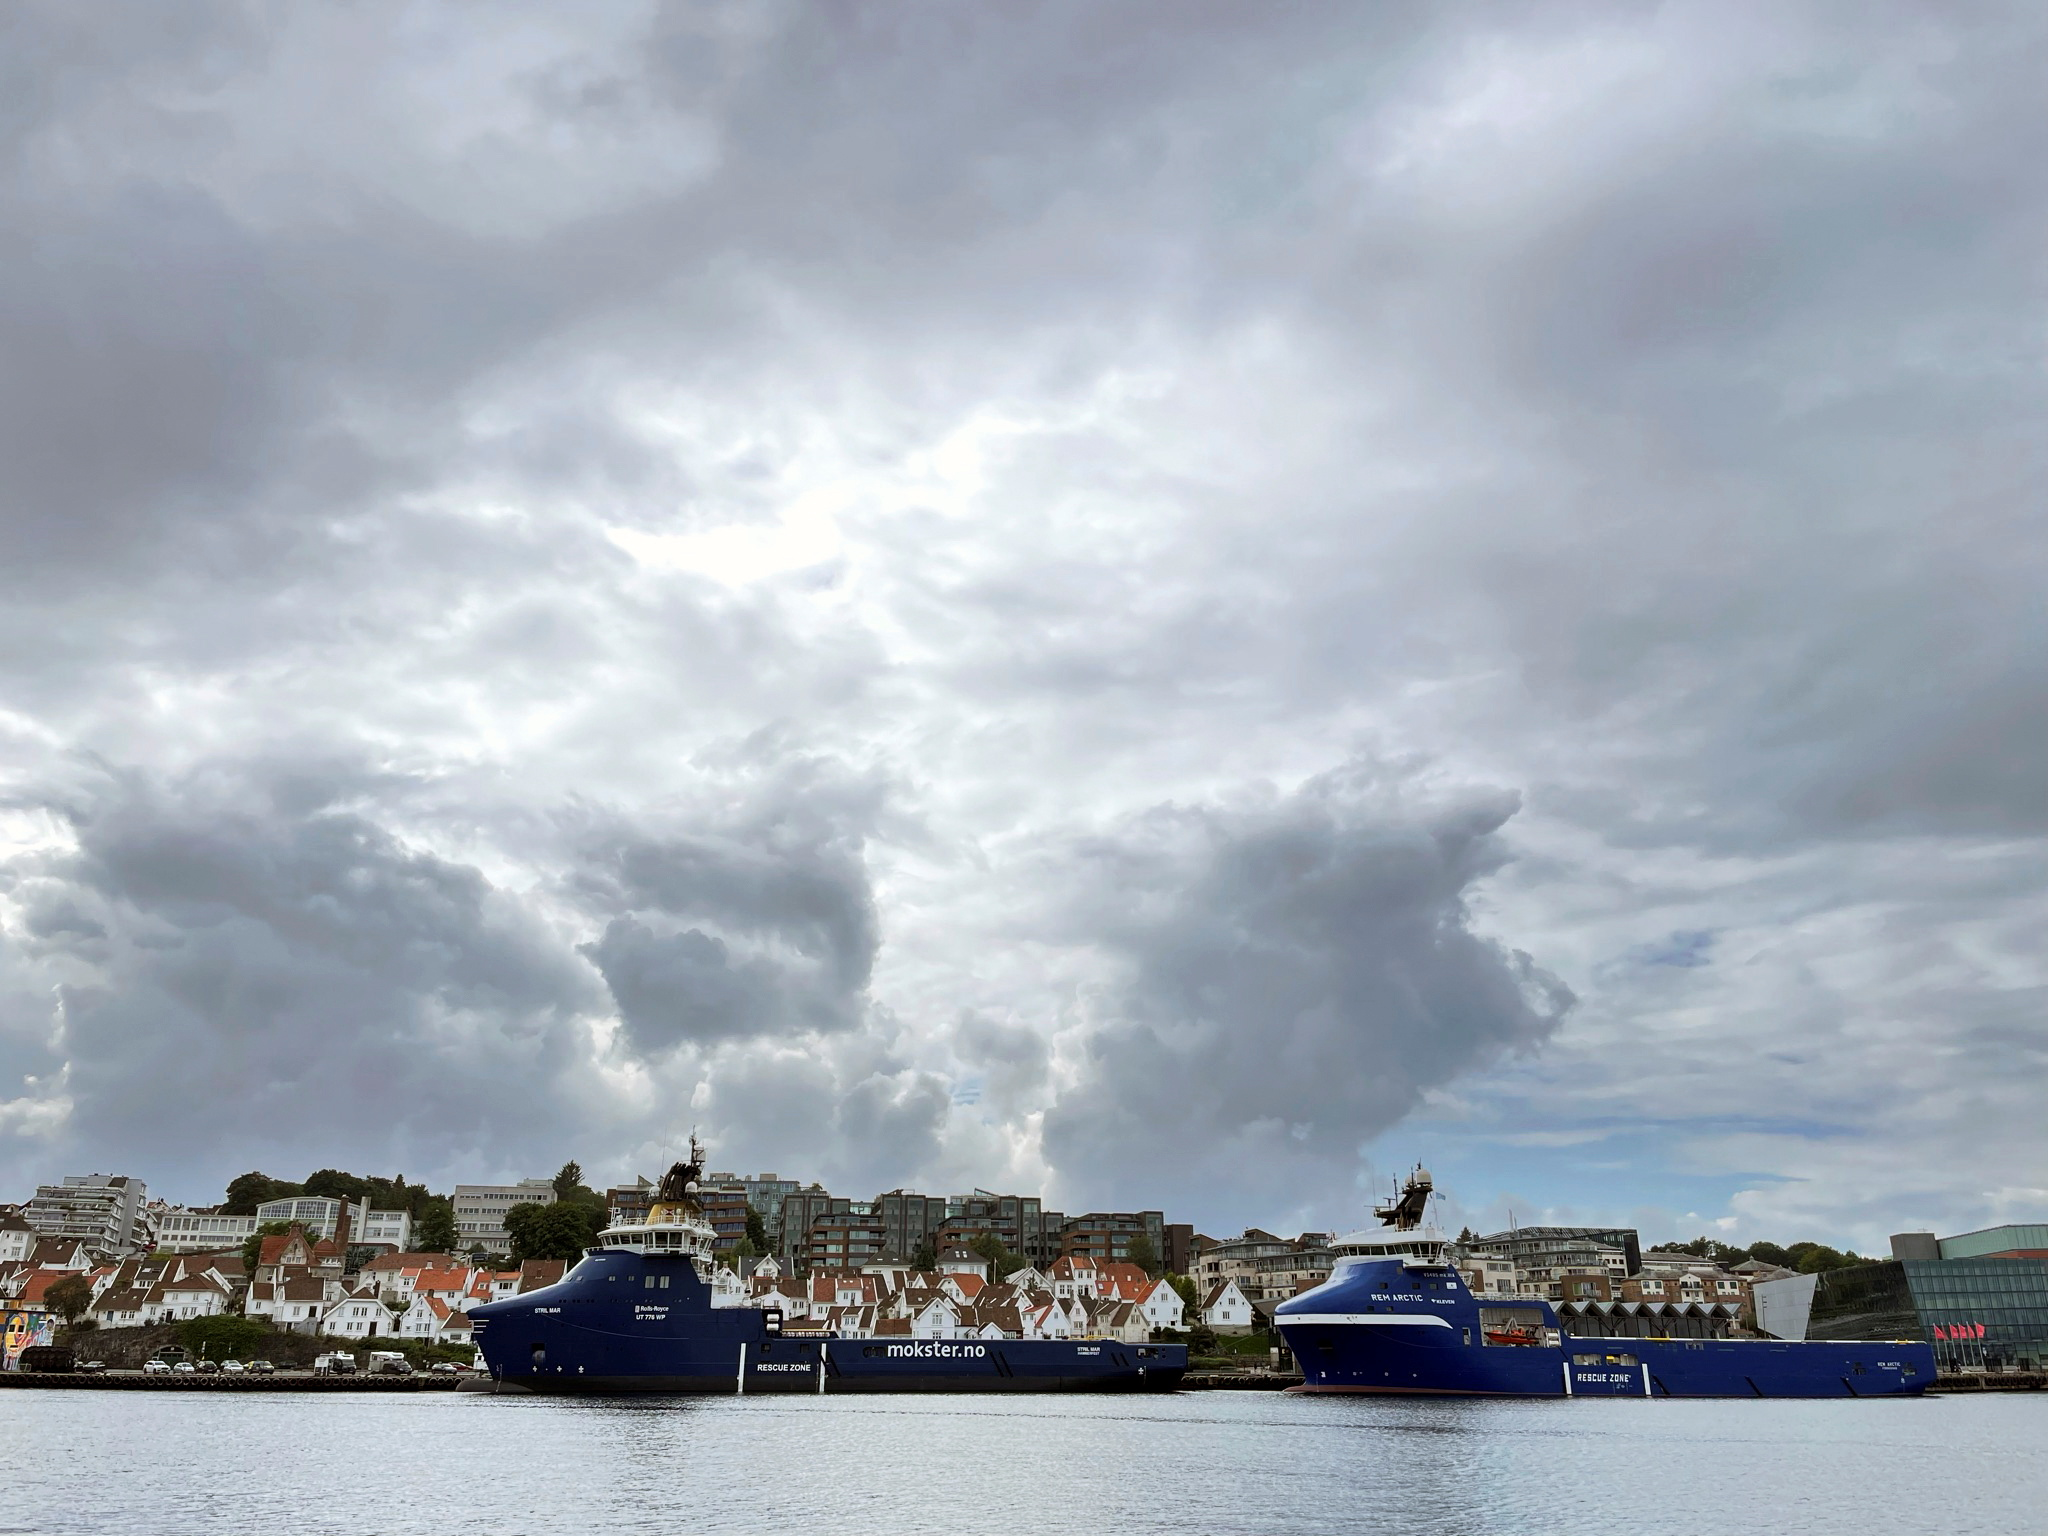 Offshore oil and gas platform supply vessels (PSVs) are docked at a pier in Stavanger, Norway, August 10, 2021.  REUTERS/Nerijus Adomaitis